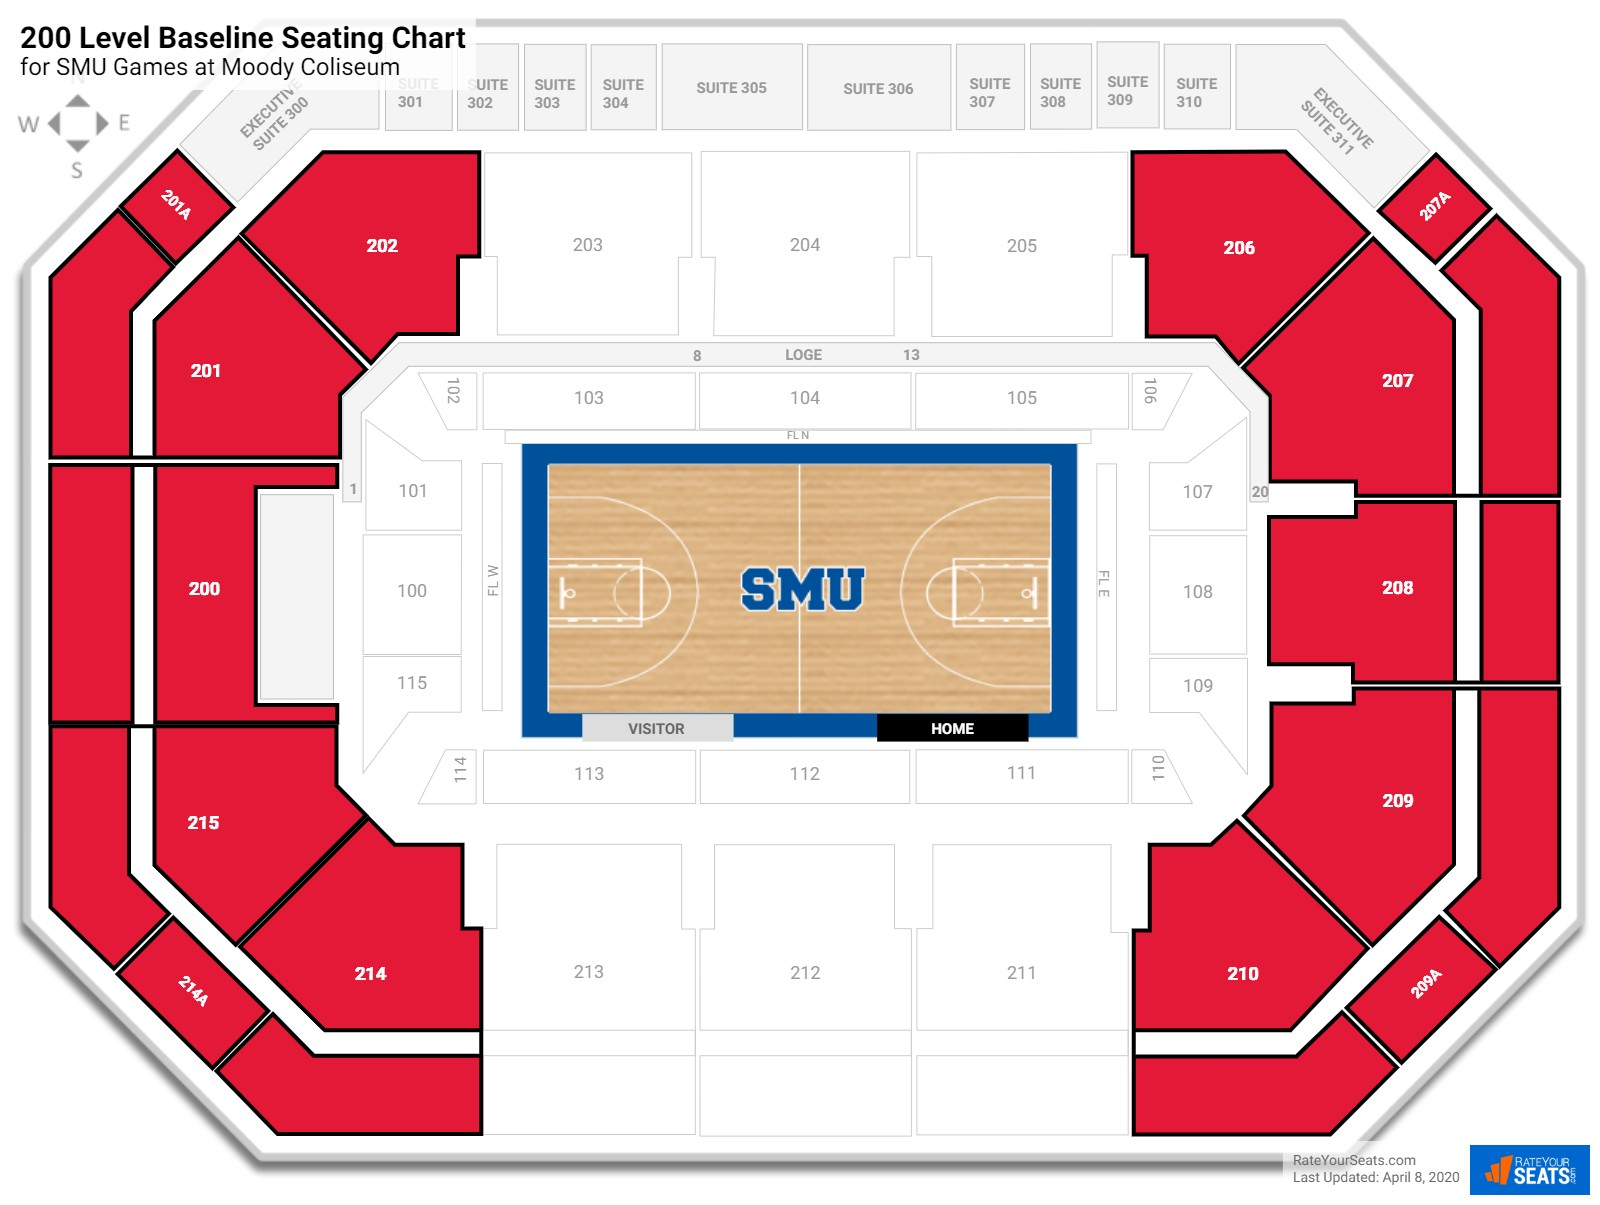 Moody Coliseum 200 Level Baseline seating chart